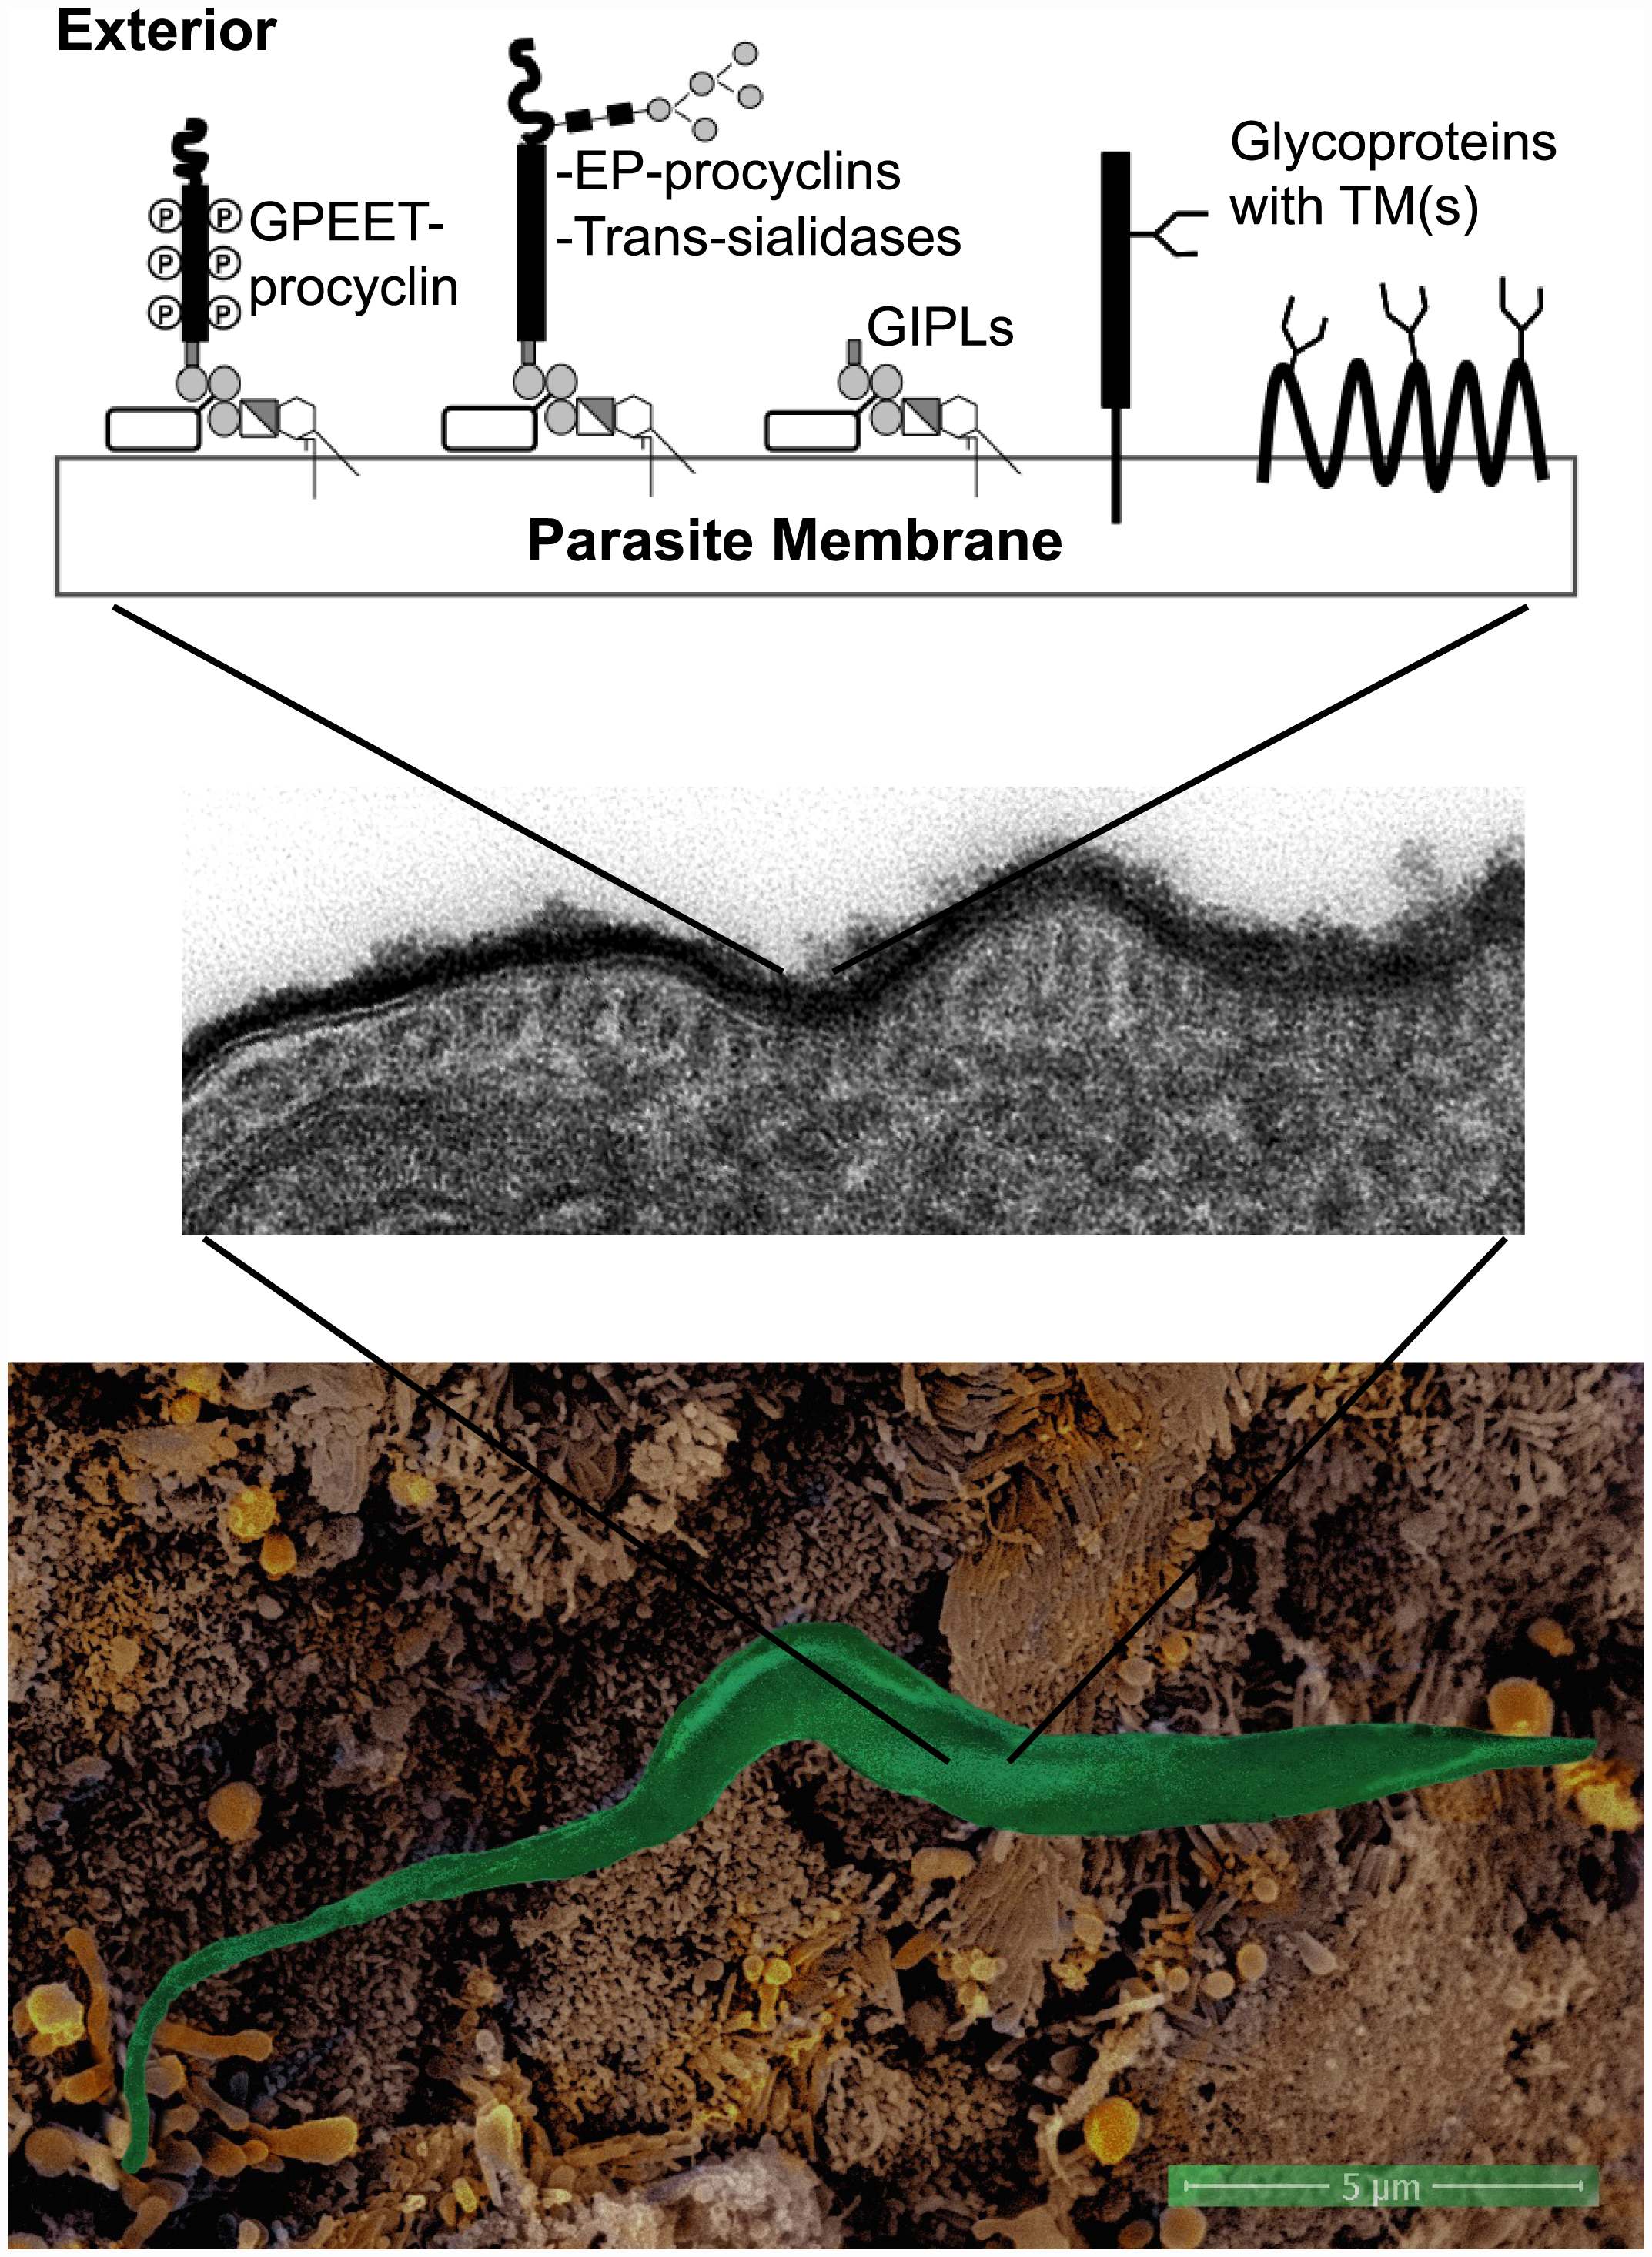 The surfaces of parasites, such as <i>Trypanosoma brucei brucei</i>, are covered by glycoconjugates forming a protective glycocalyx against the host defense systems.